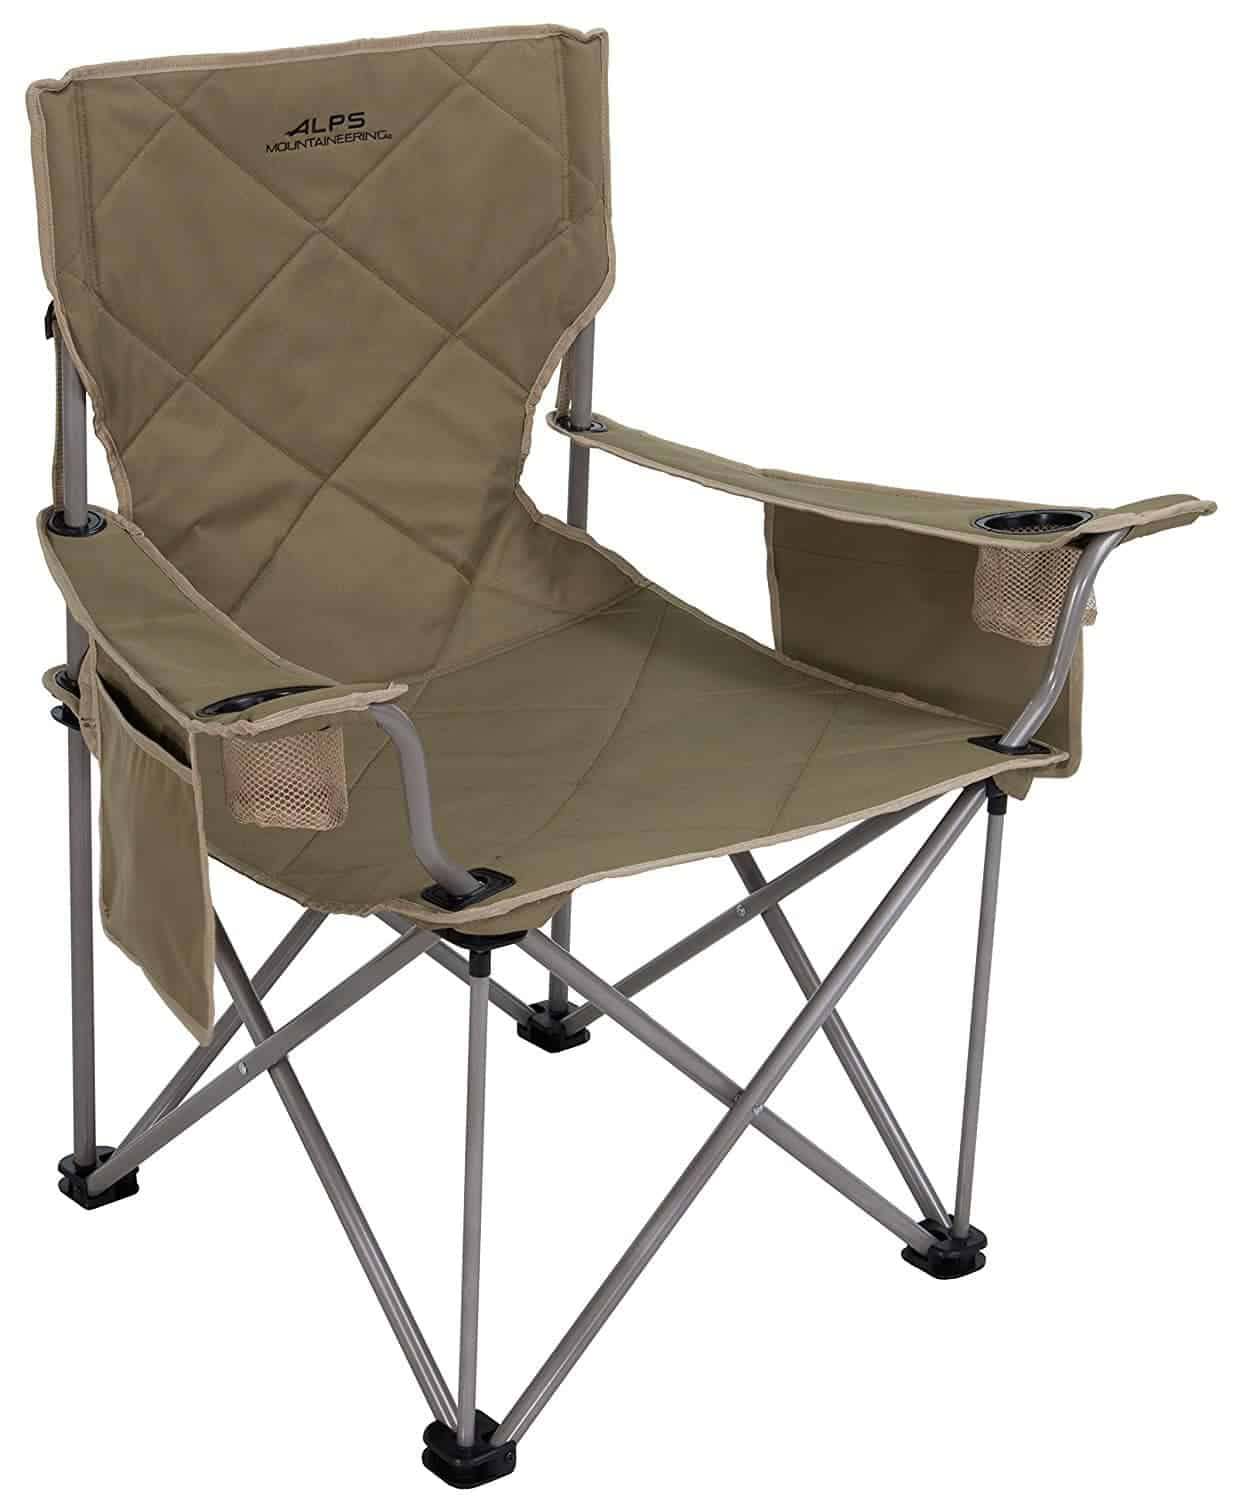 Big And Tall Outdoor Chairs   ALPS Mountaineering King Kong Chair